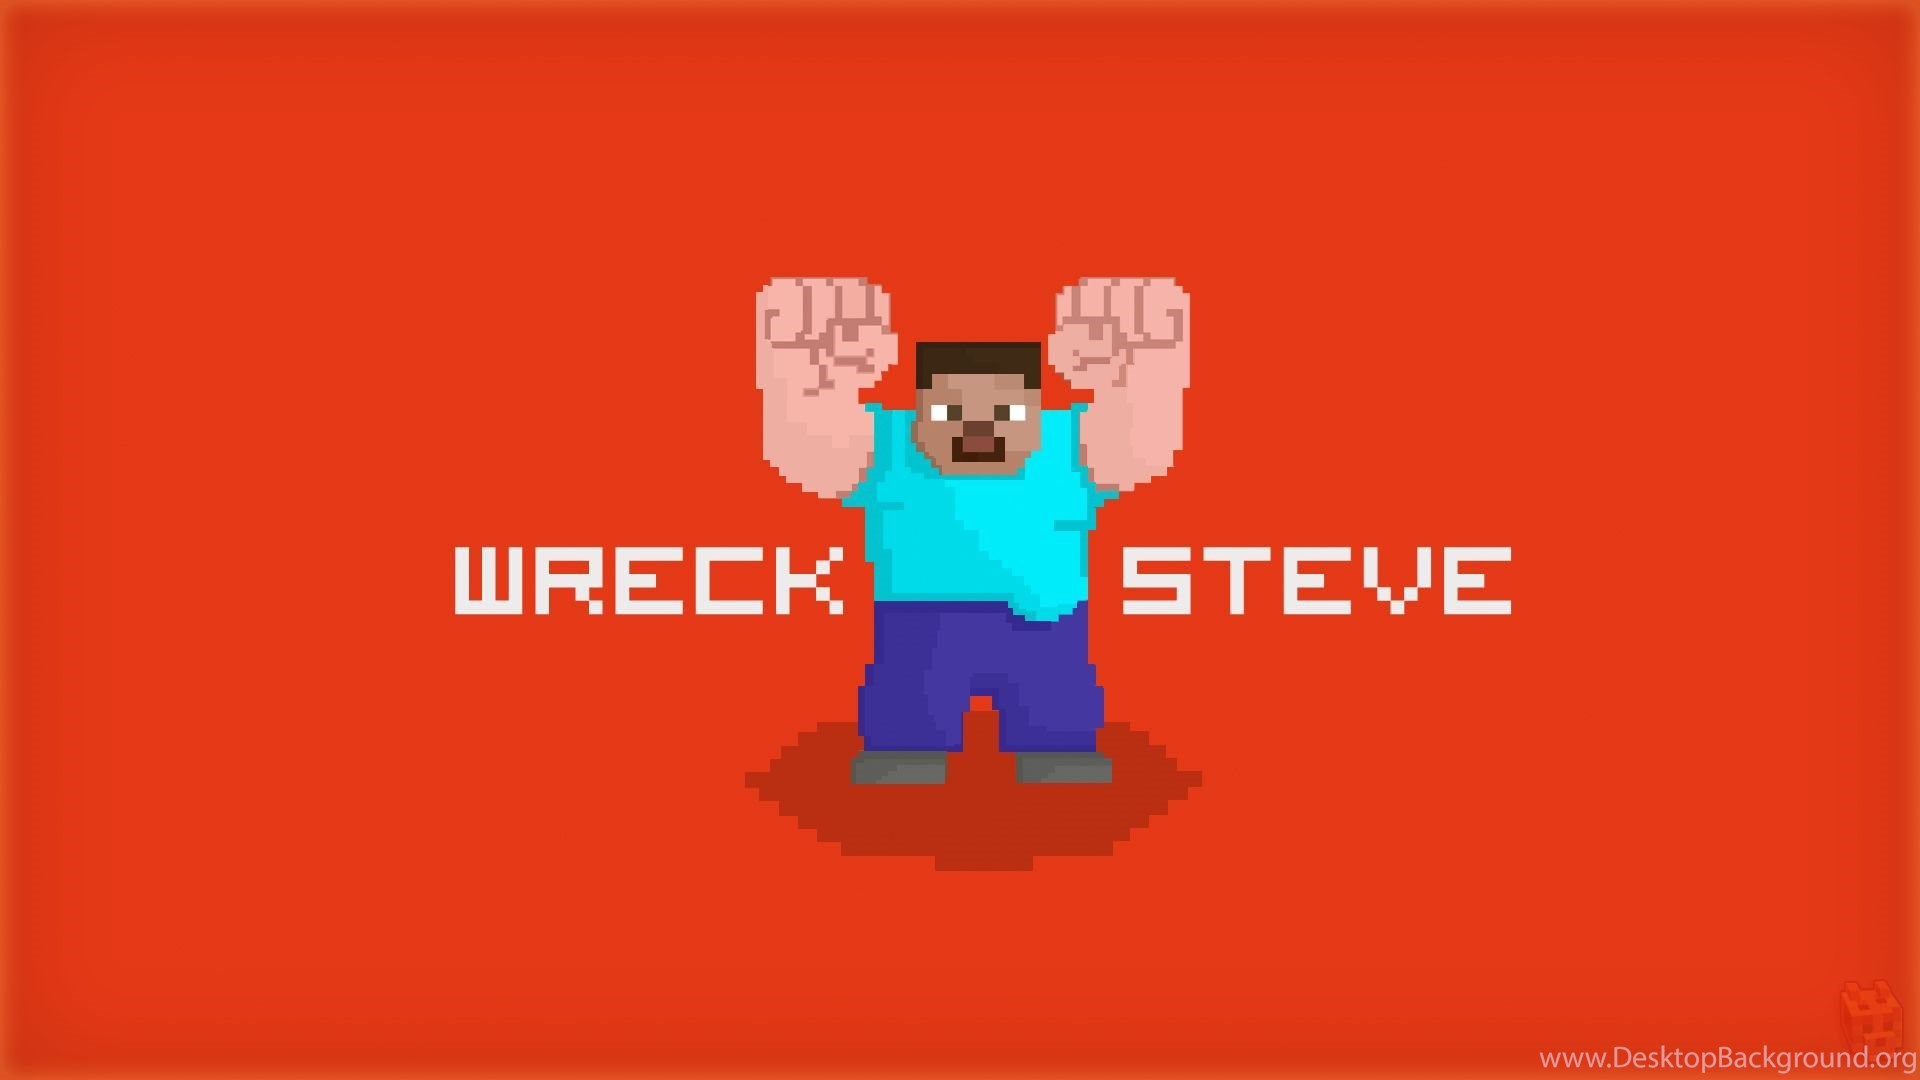 Wreck It Ralph Minecraft Wallpaper Jpg Desktop Background